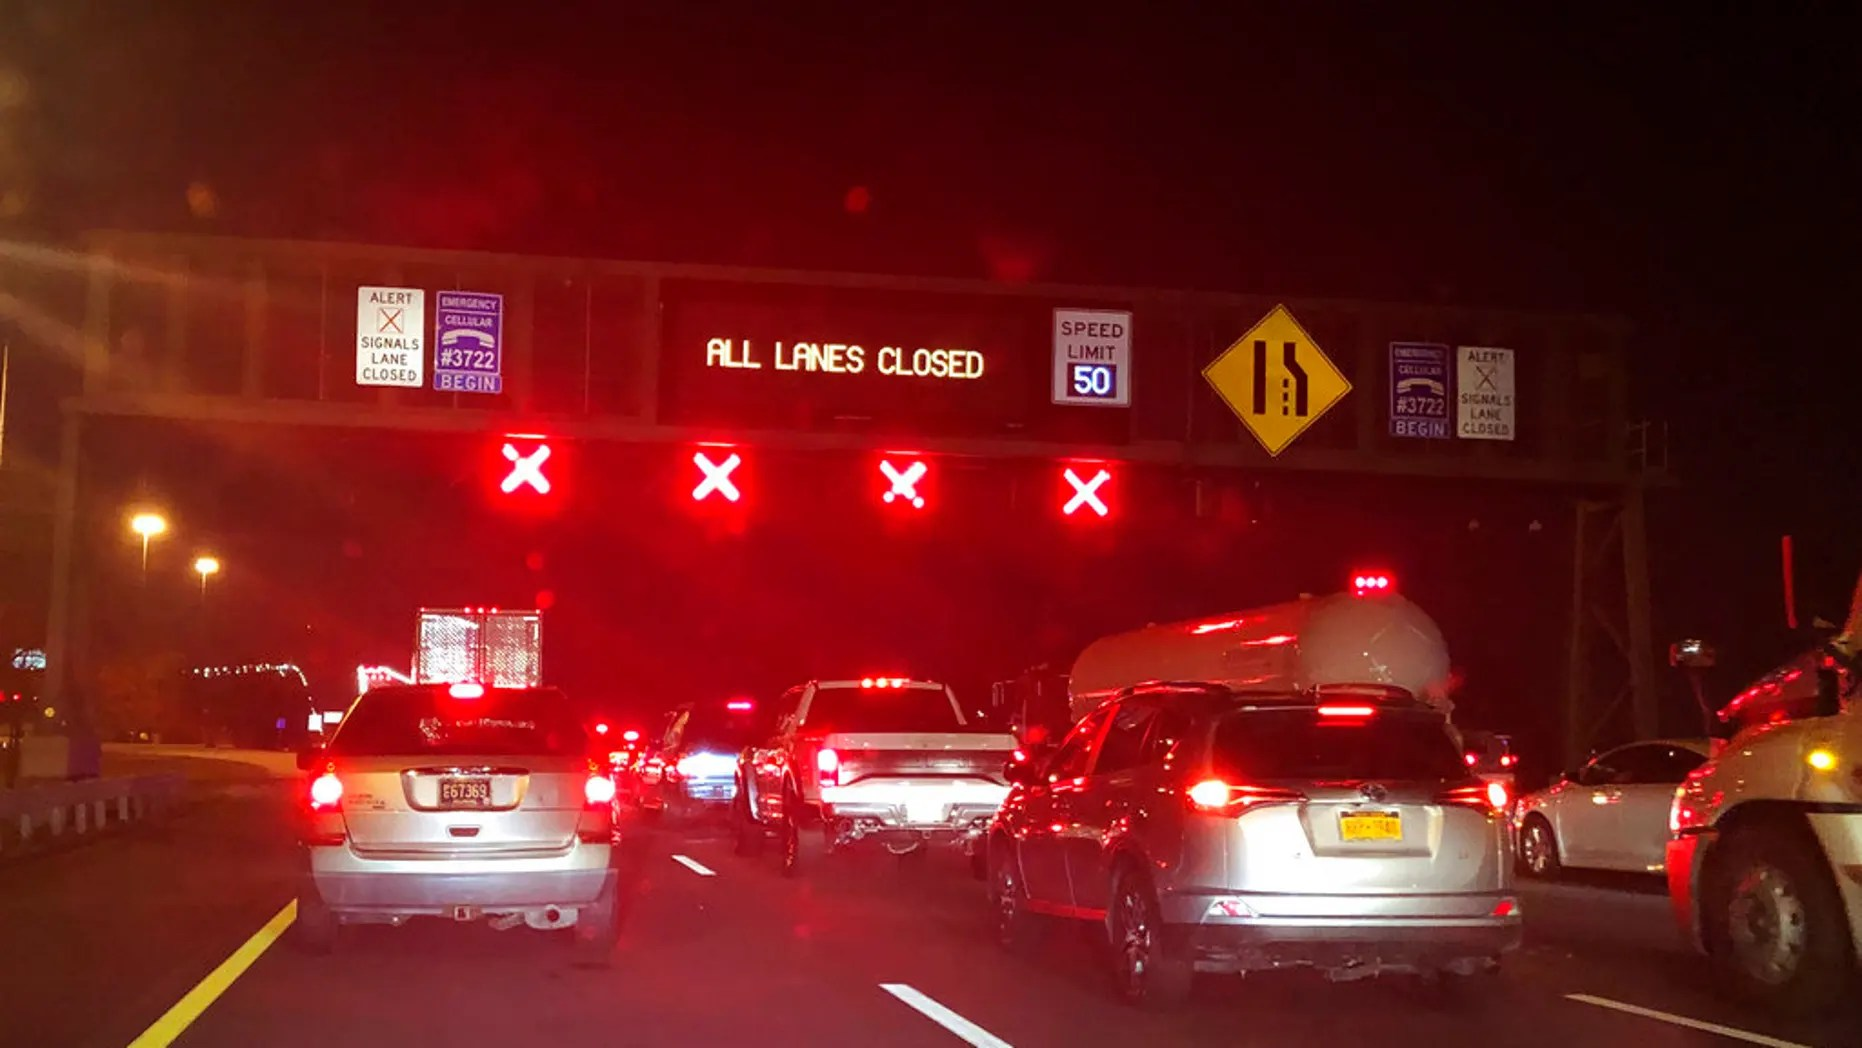 A chemical leak shut down Delaware Memorial Bridge in both directions Sunday evening, bringing traffic to a standstill on one of the busiest travel days of the year.